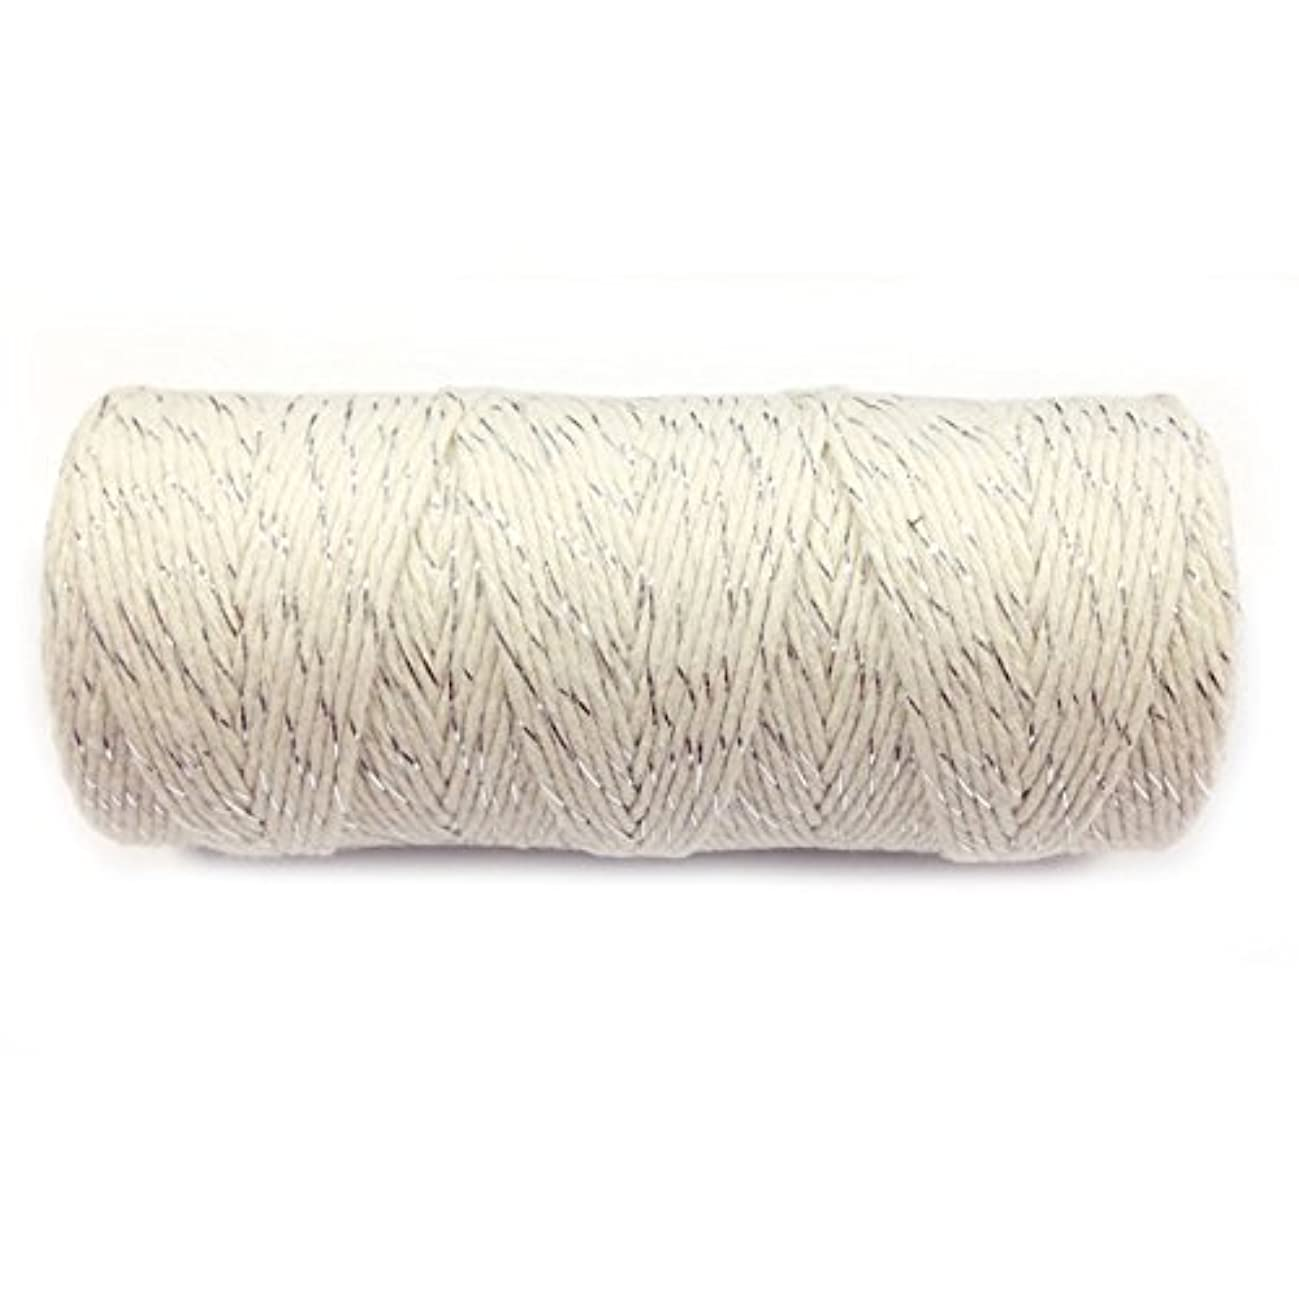 Wrapables 12-Ply Cotton Baker's Twine, 110-Yard, Metallic Silver